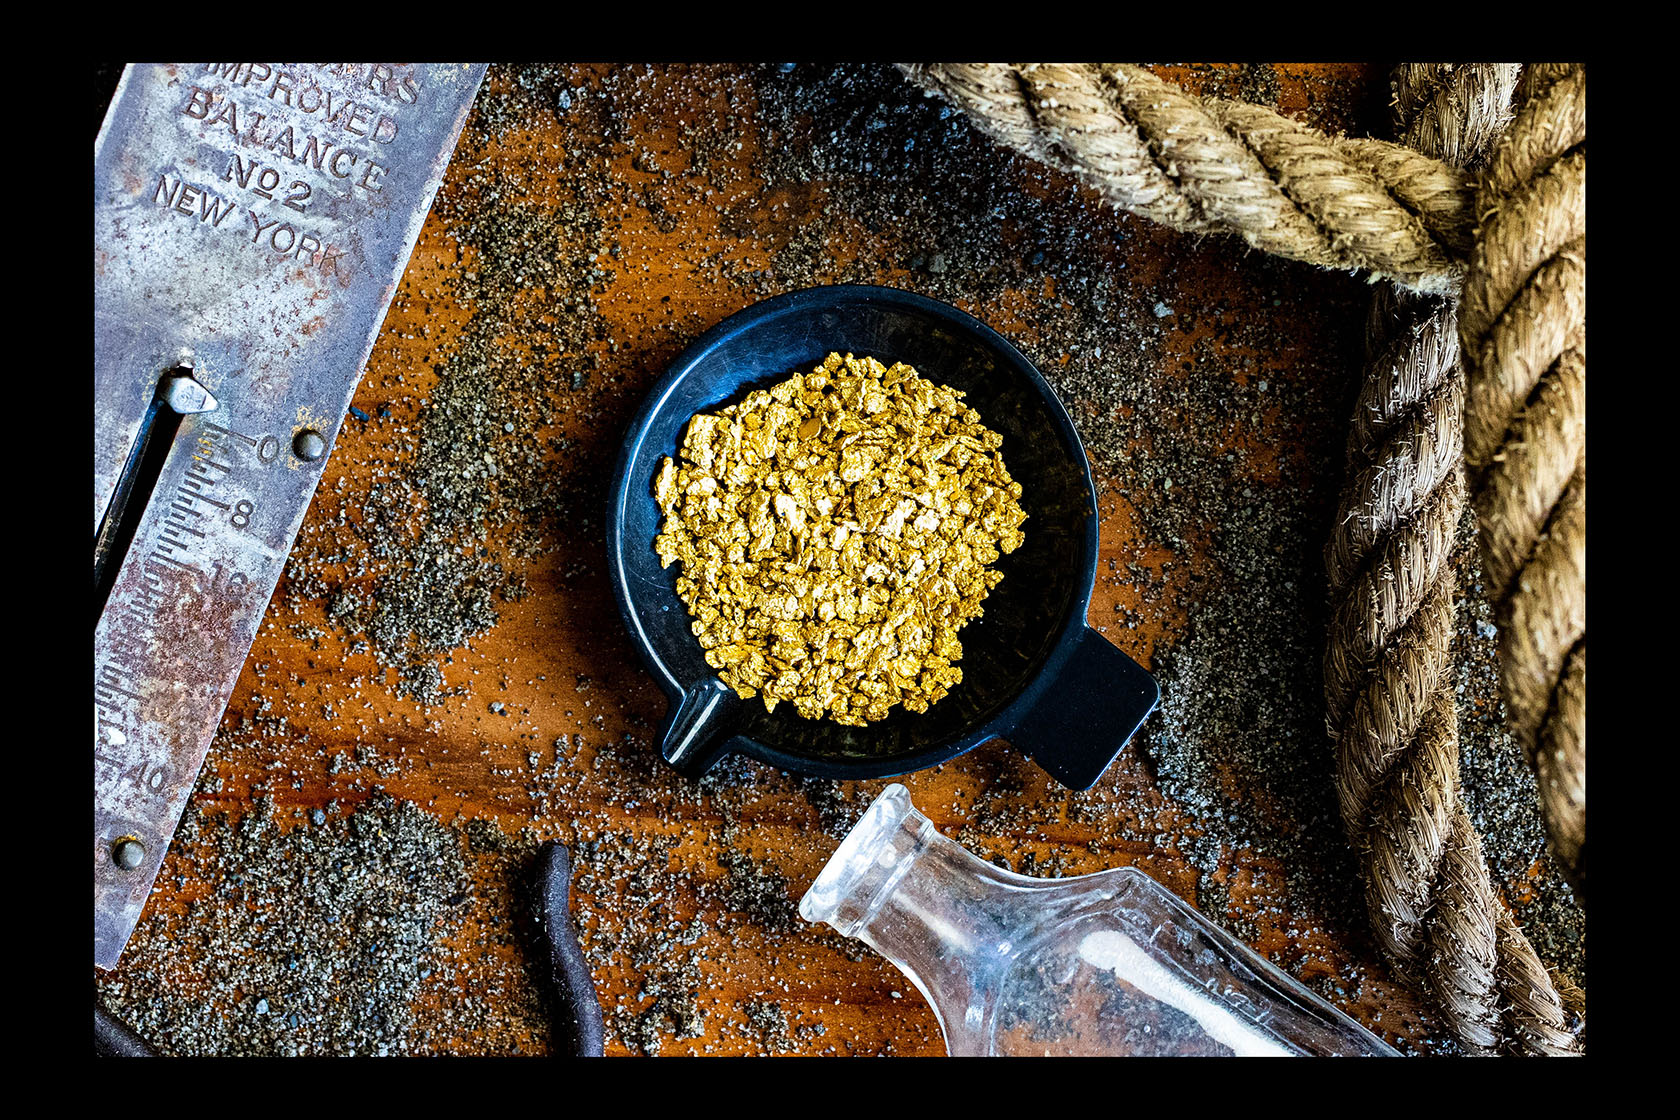 Rose Creek, Nevada - 3 Grams of Exceptionally Pure Gold Nuggets